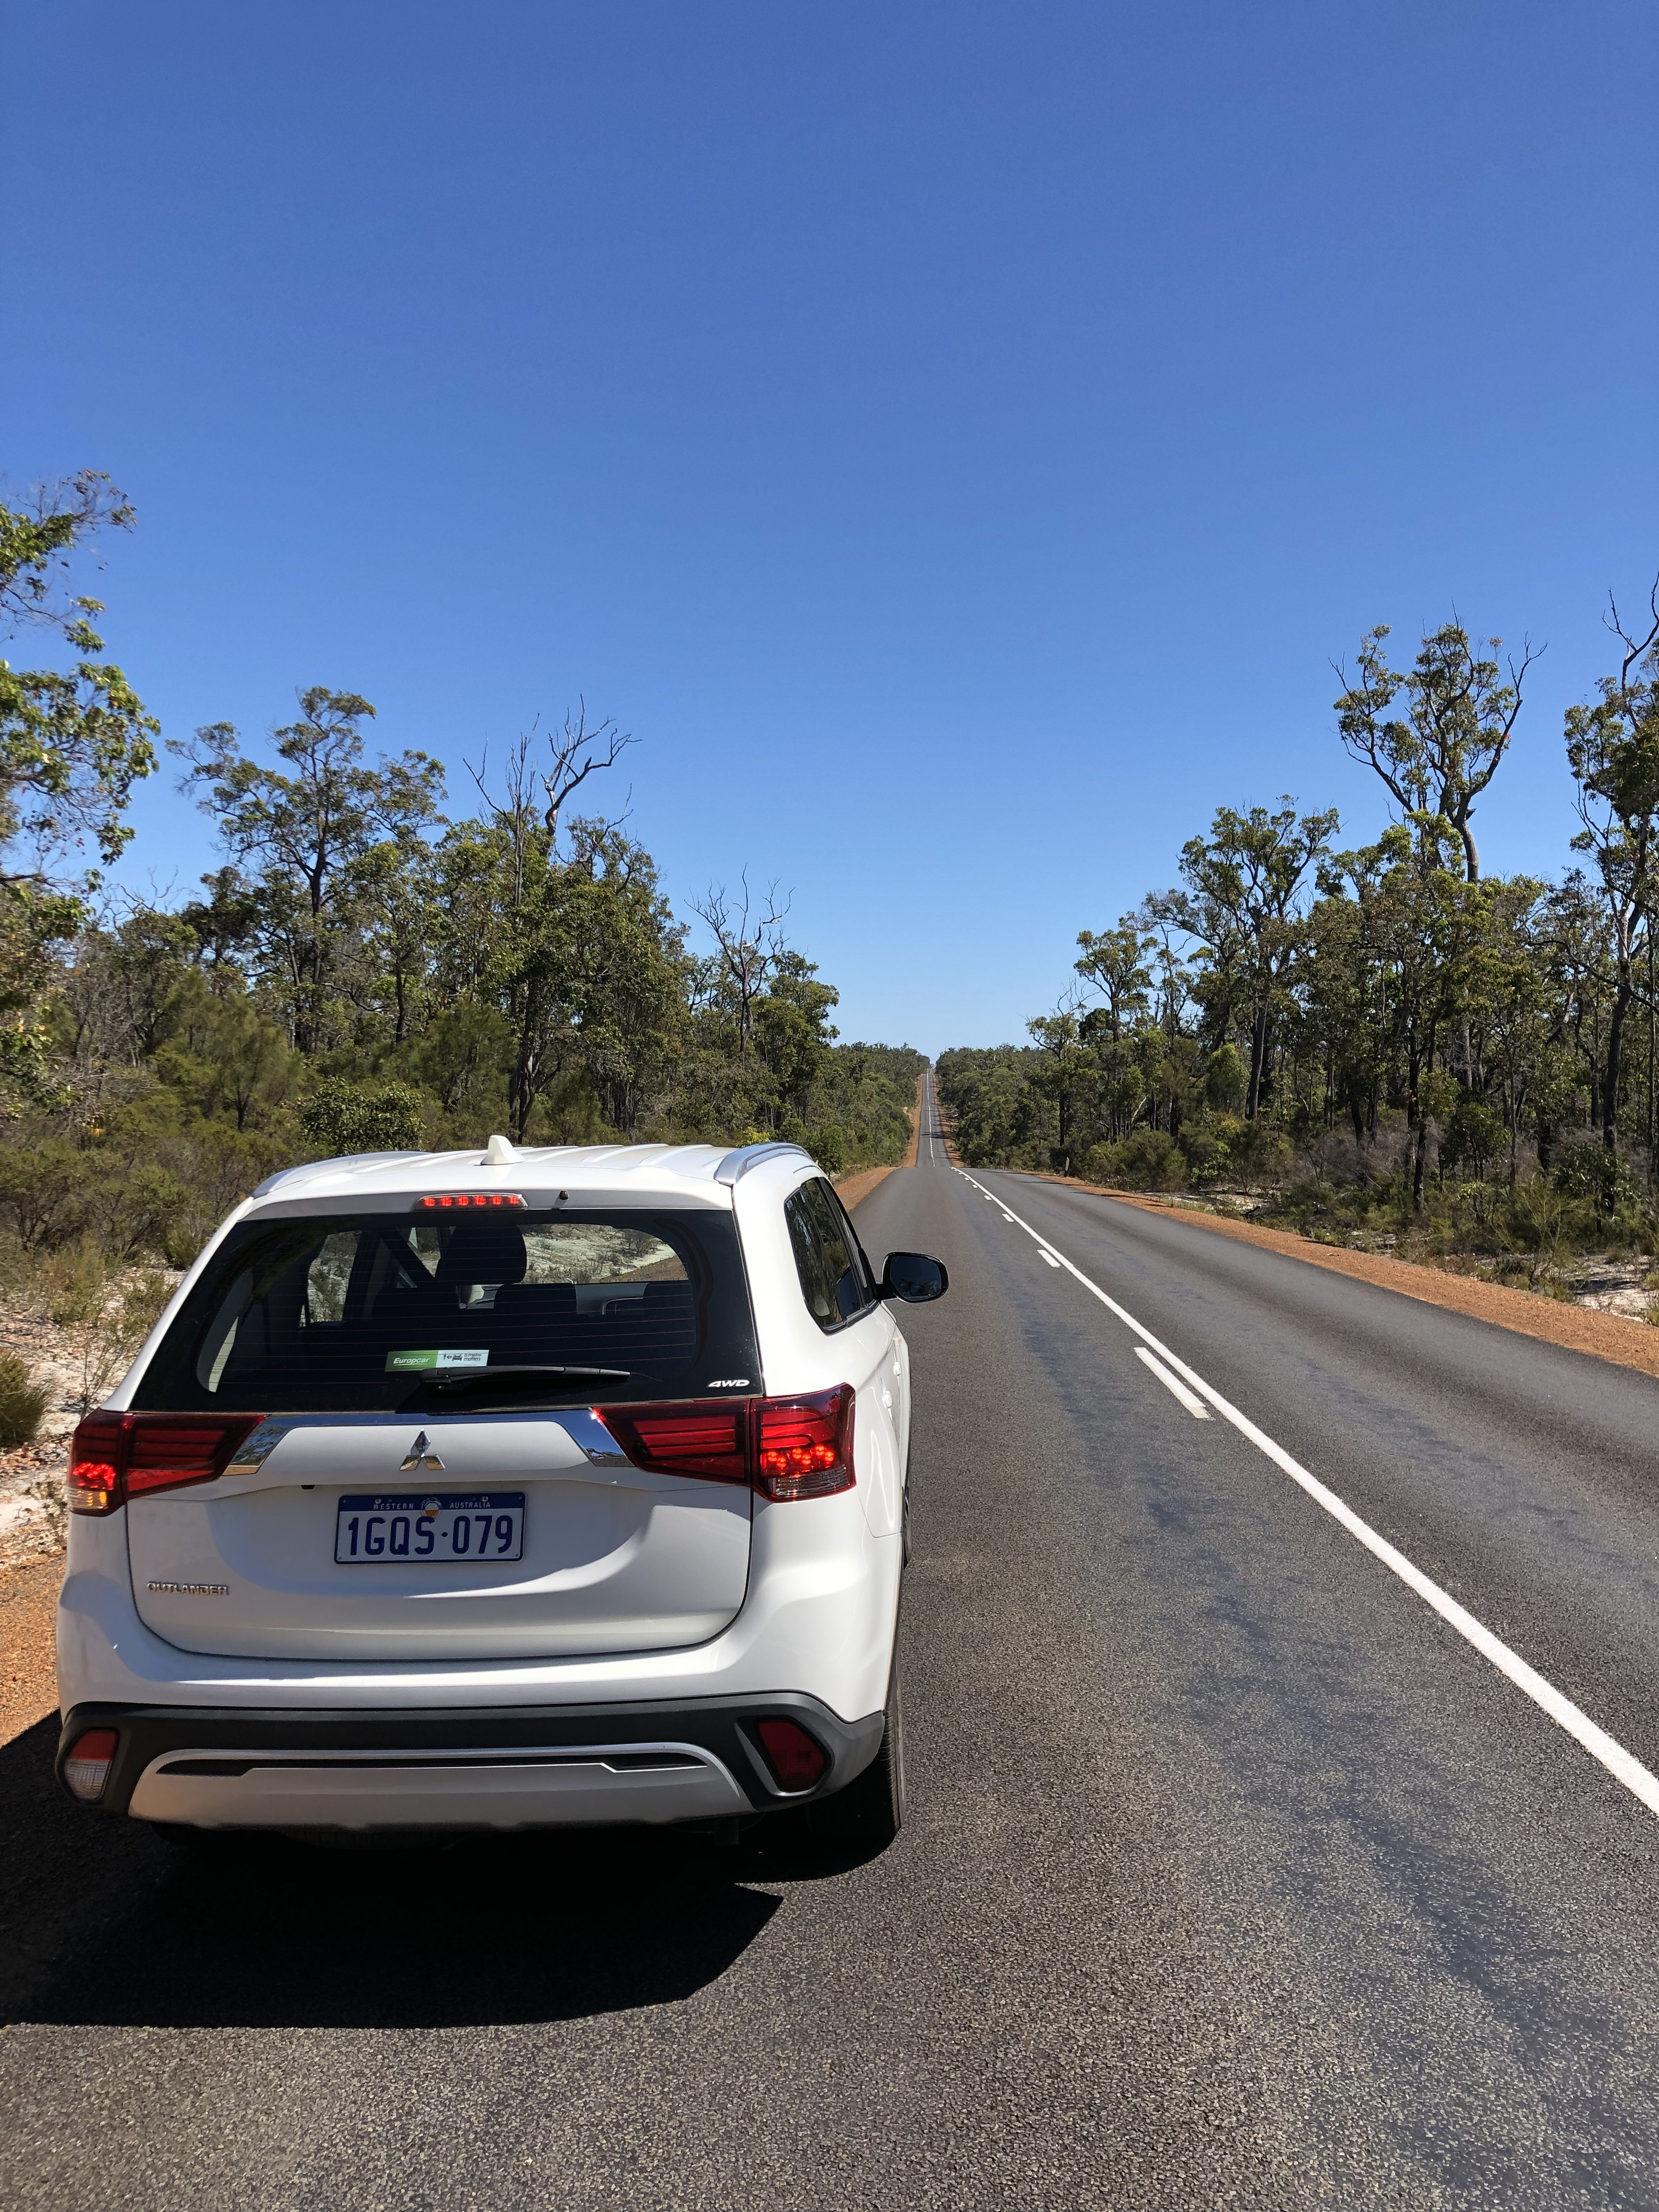 Straight Roads And Huge Eucalyptus Forests